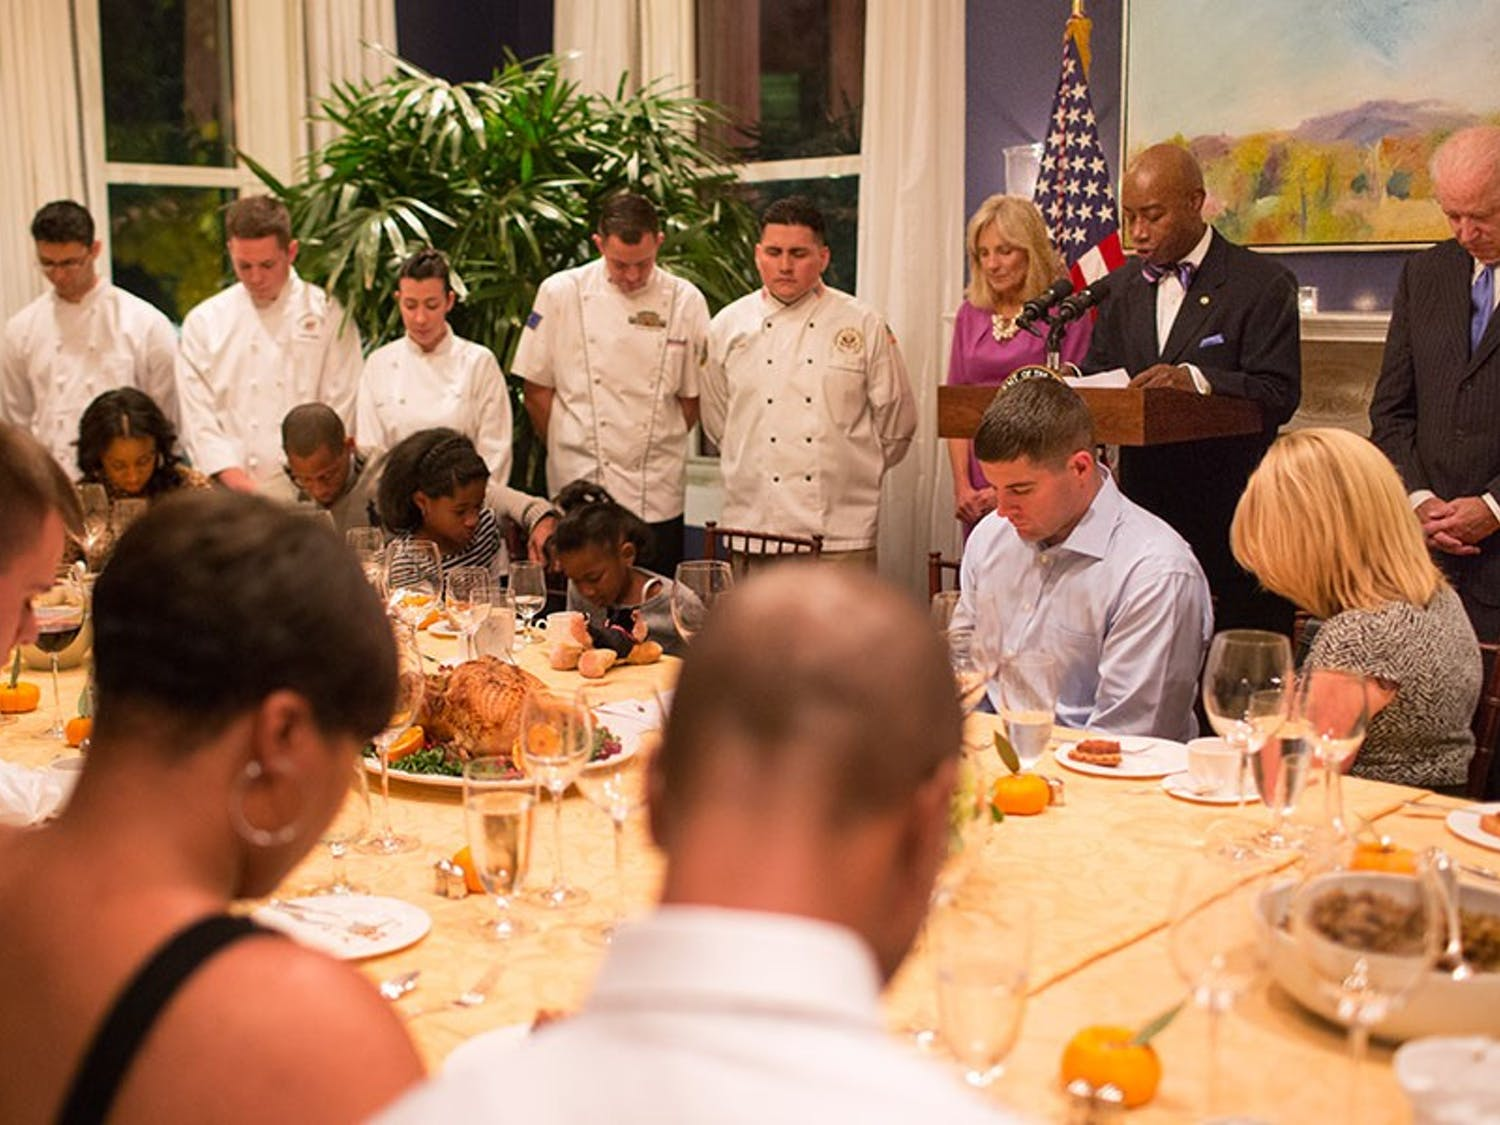 Vice President Joe Biden and Dr. Jill Biden bow their heads as Chaplain Barry Black gives the benediction during the fifth annual wounded warrior Thanksgiving dinner, at the Naval Observatory Residence, November 21, 2013. (Official White House Photo by David Lienemann)